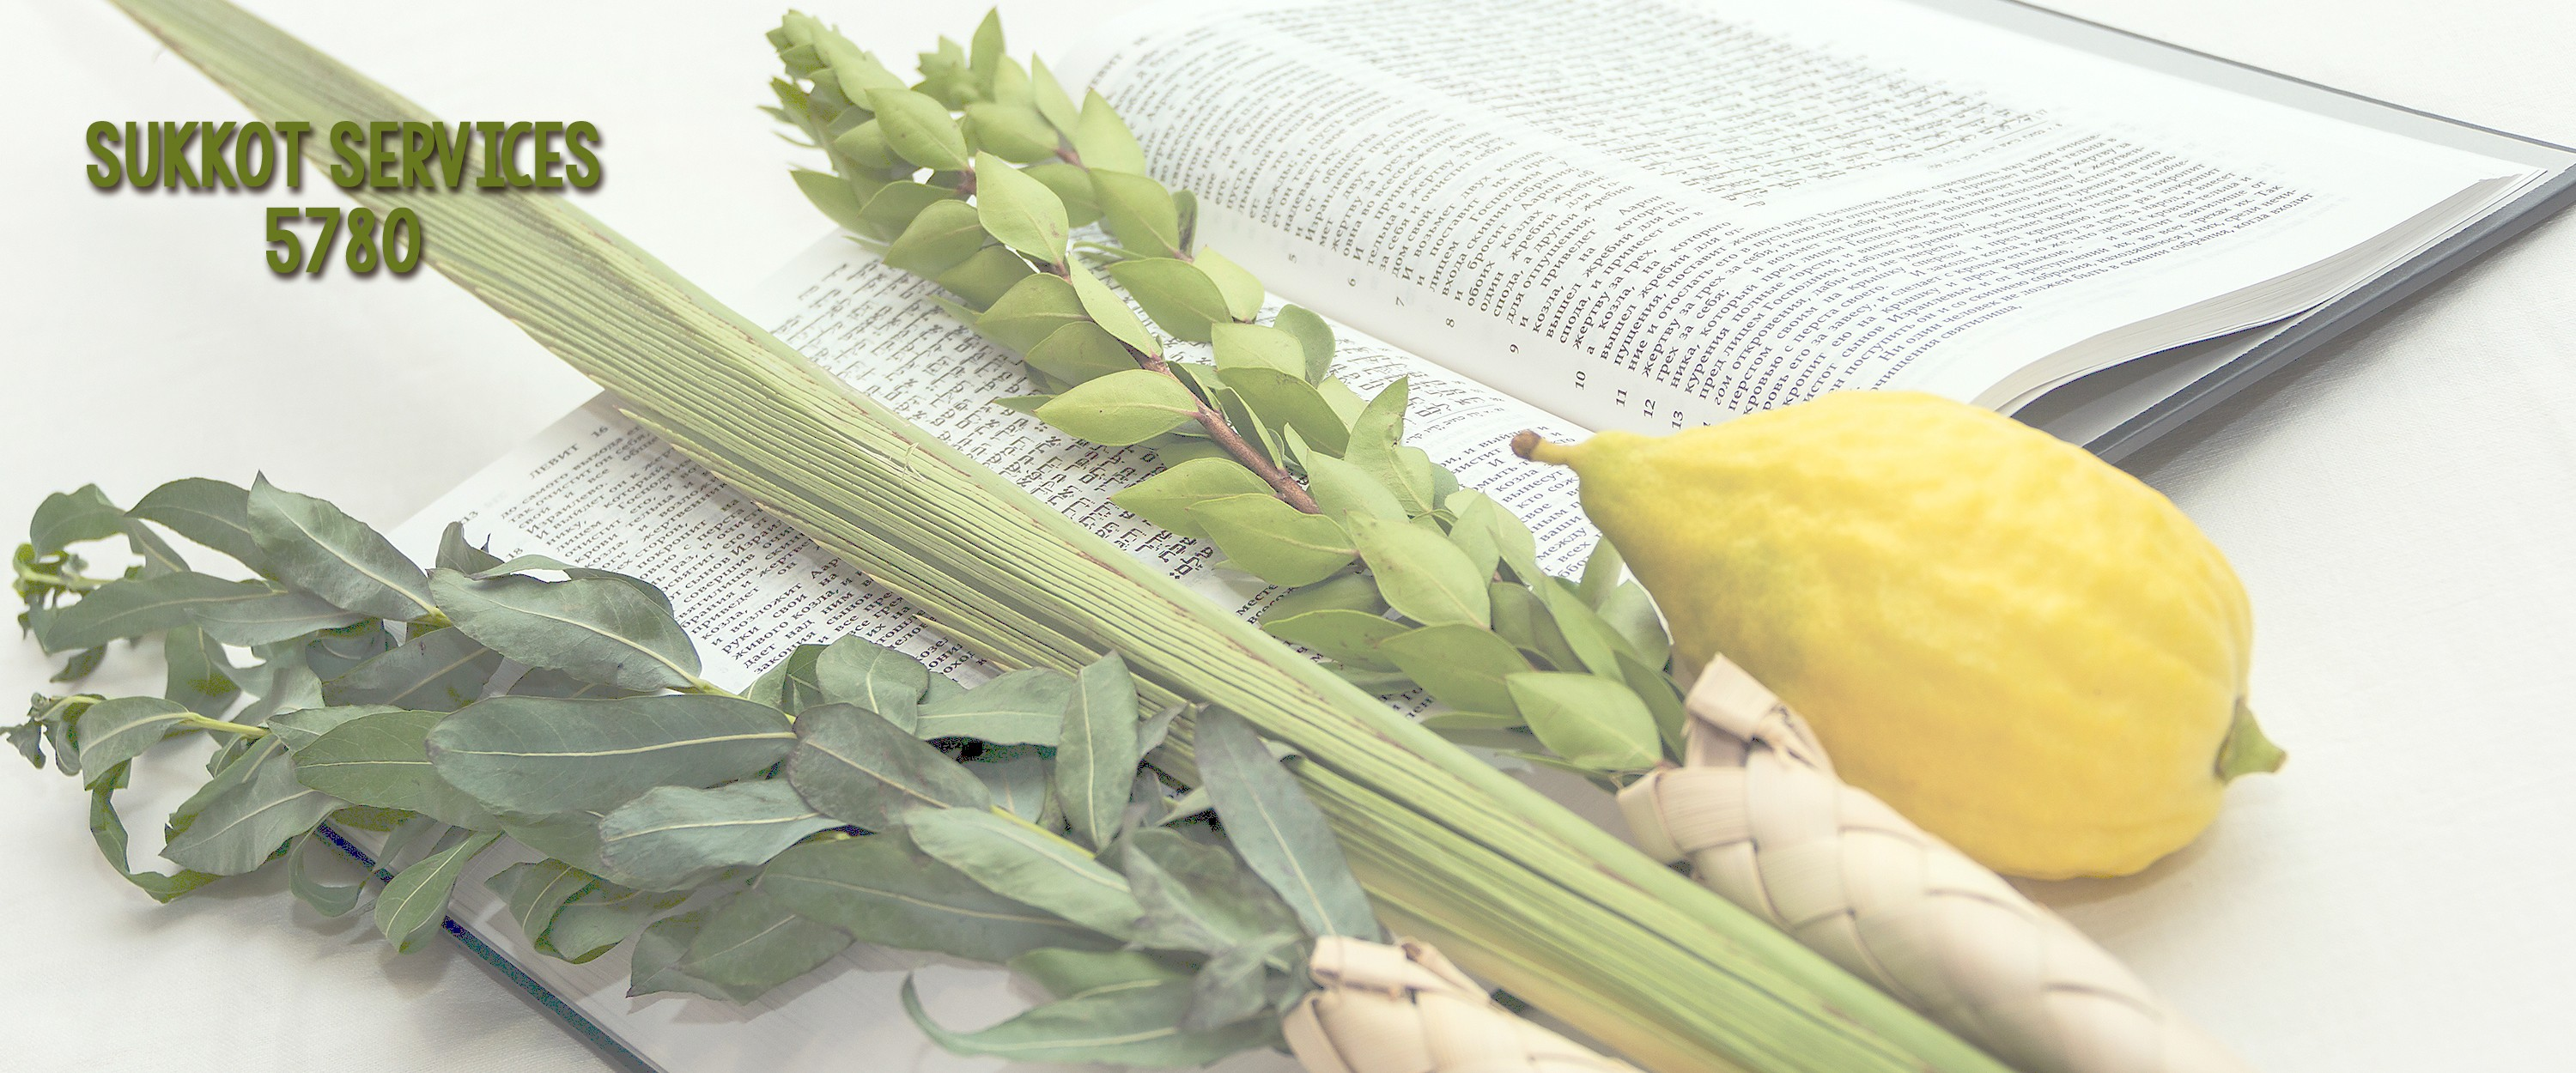 """<a href=""""https://www.bnaitorahct.org/sukkot_5780""""                                     target="""""""">                                                                 <span class=""""slider_title"""">                                     Sukkot Services                                </span>                                                                 </a>                                                                                                                                                                                       <span class=""""slider_description"""">Join us for Sukkot services and then a beautiful kiddush after in the Sukkah!</span>                                                                                     <a href=""""https://www.bnaitorahct.org/sukkot_5780"""" class=""""slider_link""""                             target="""""""">                             Learn more                            </a>"""